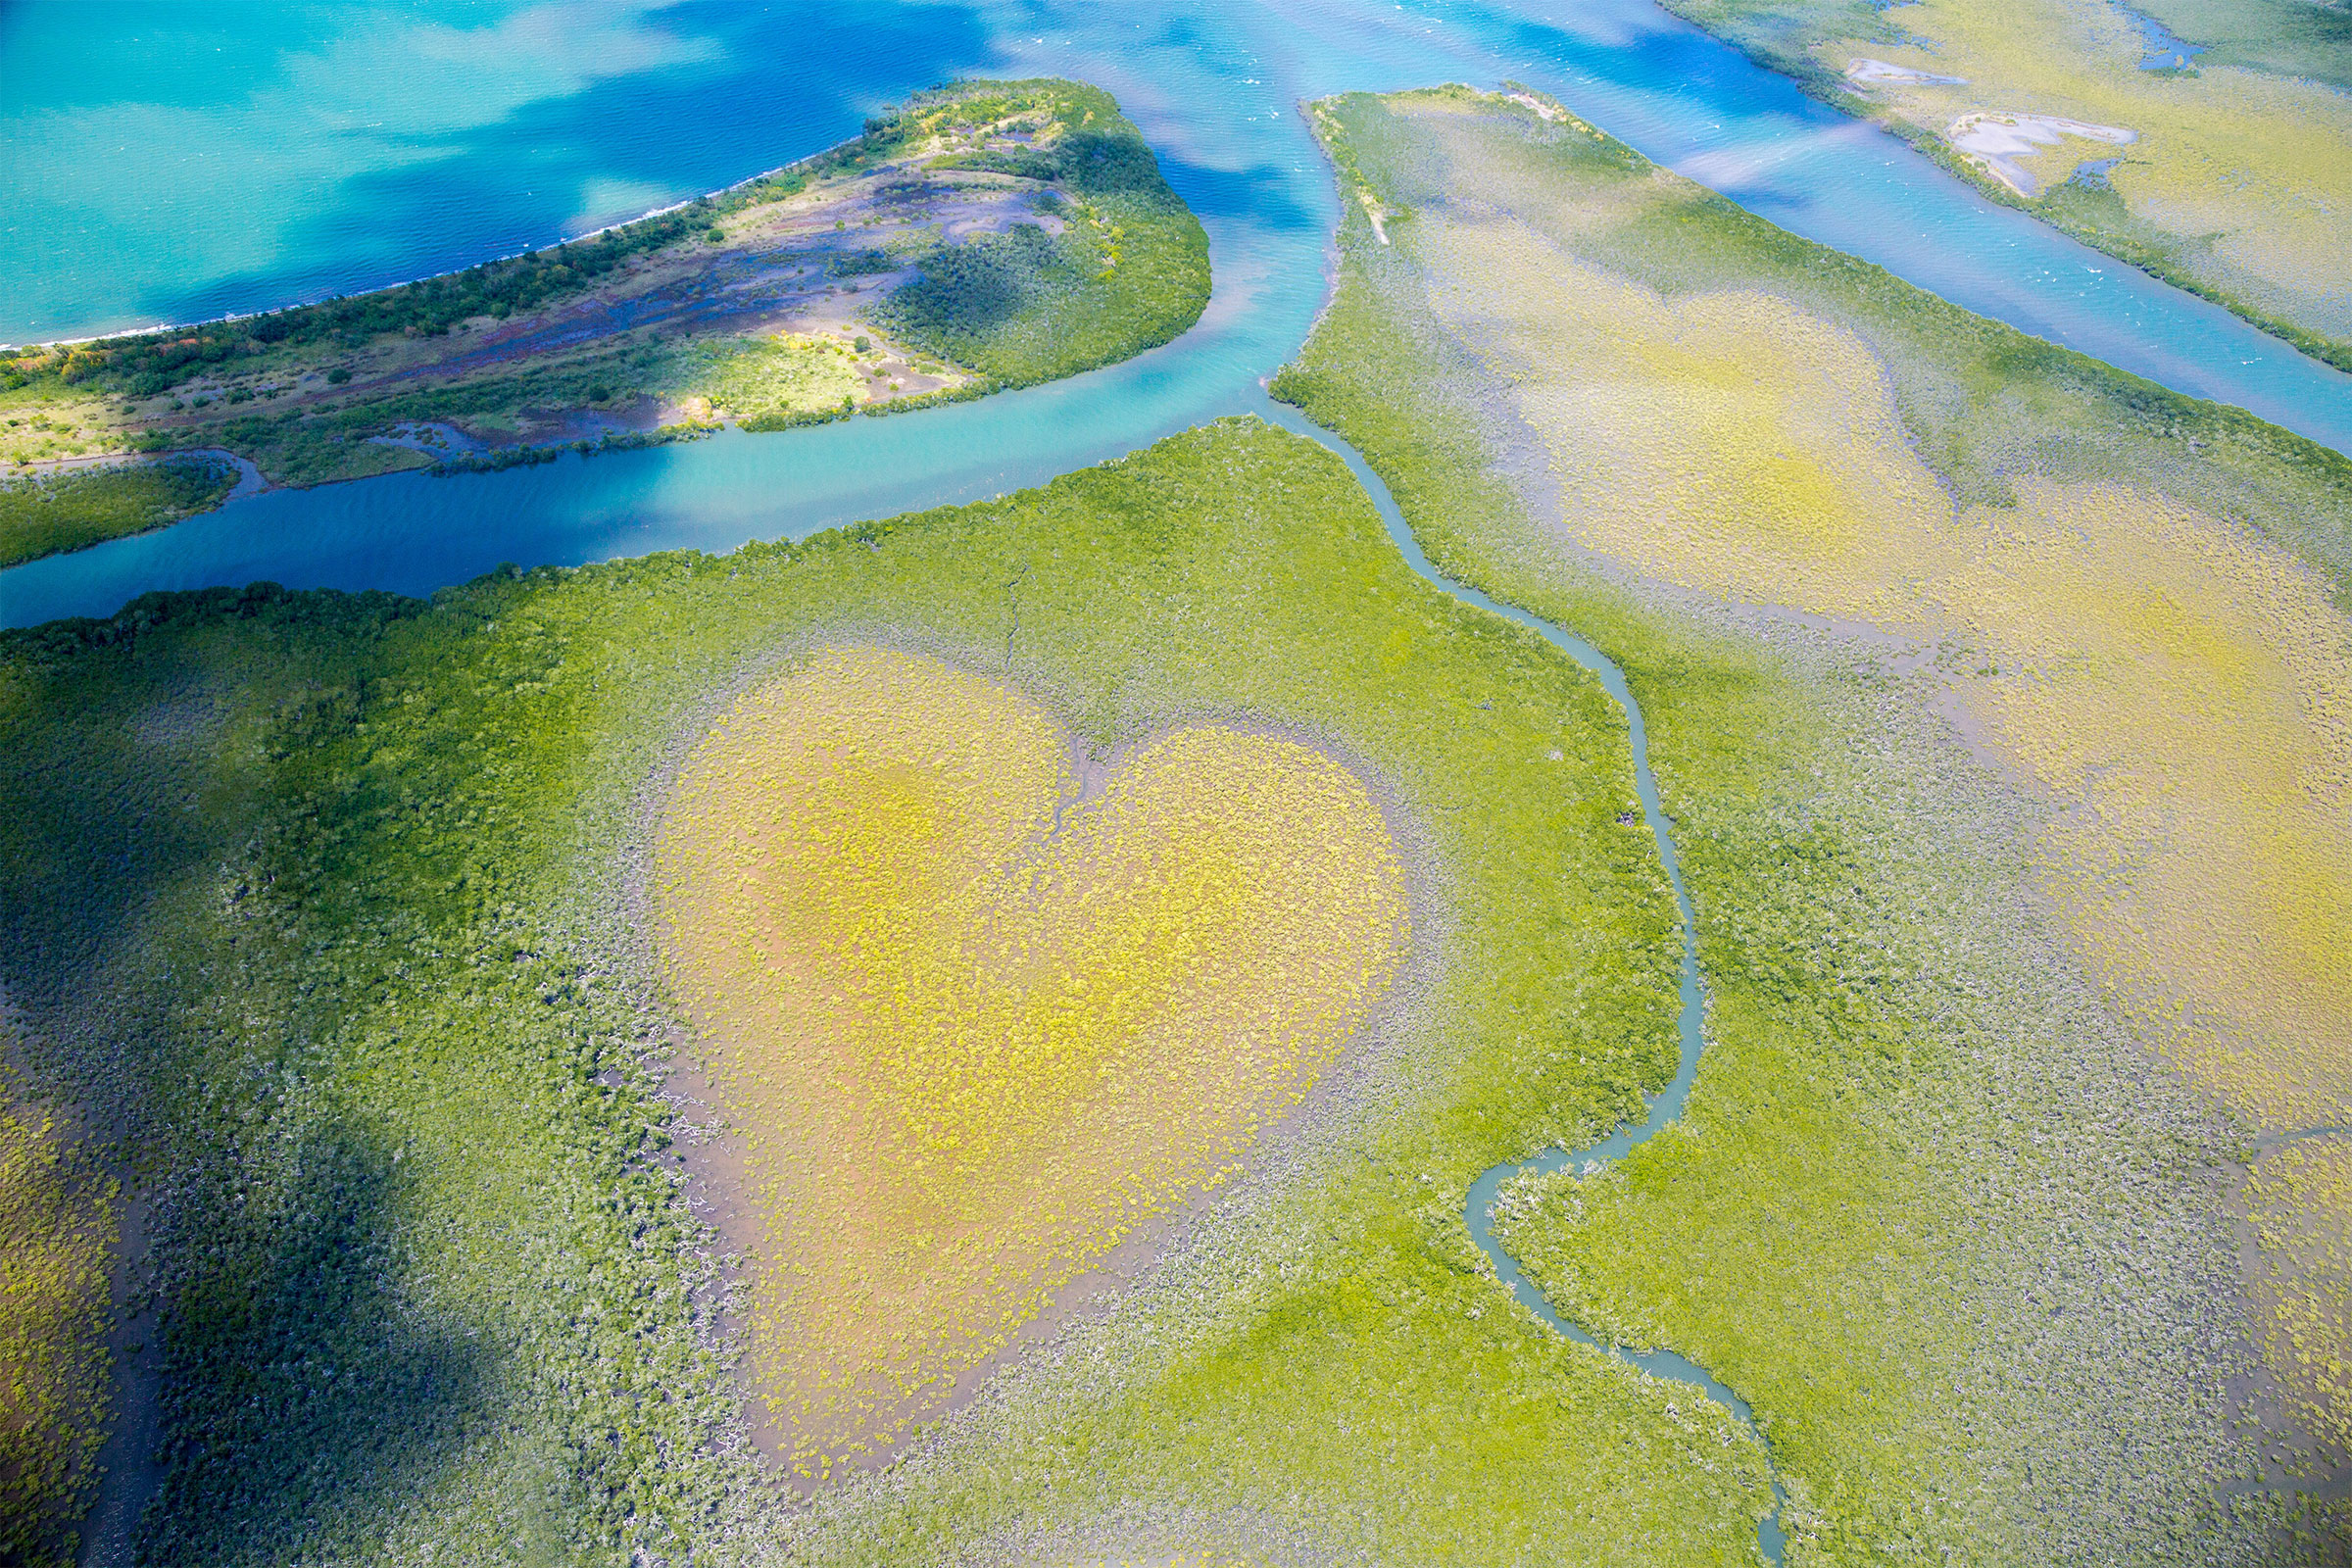 Heart of Voh, New Caledonia